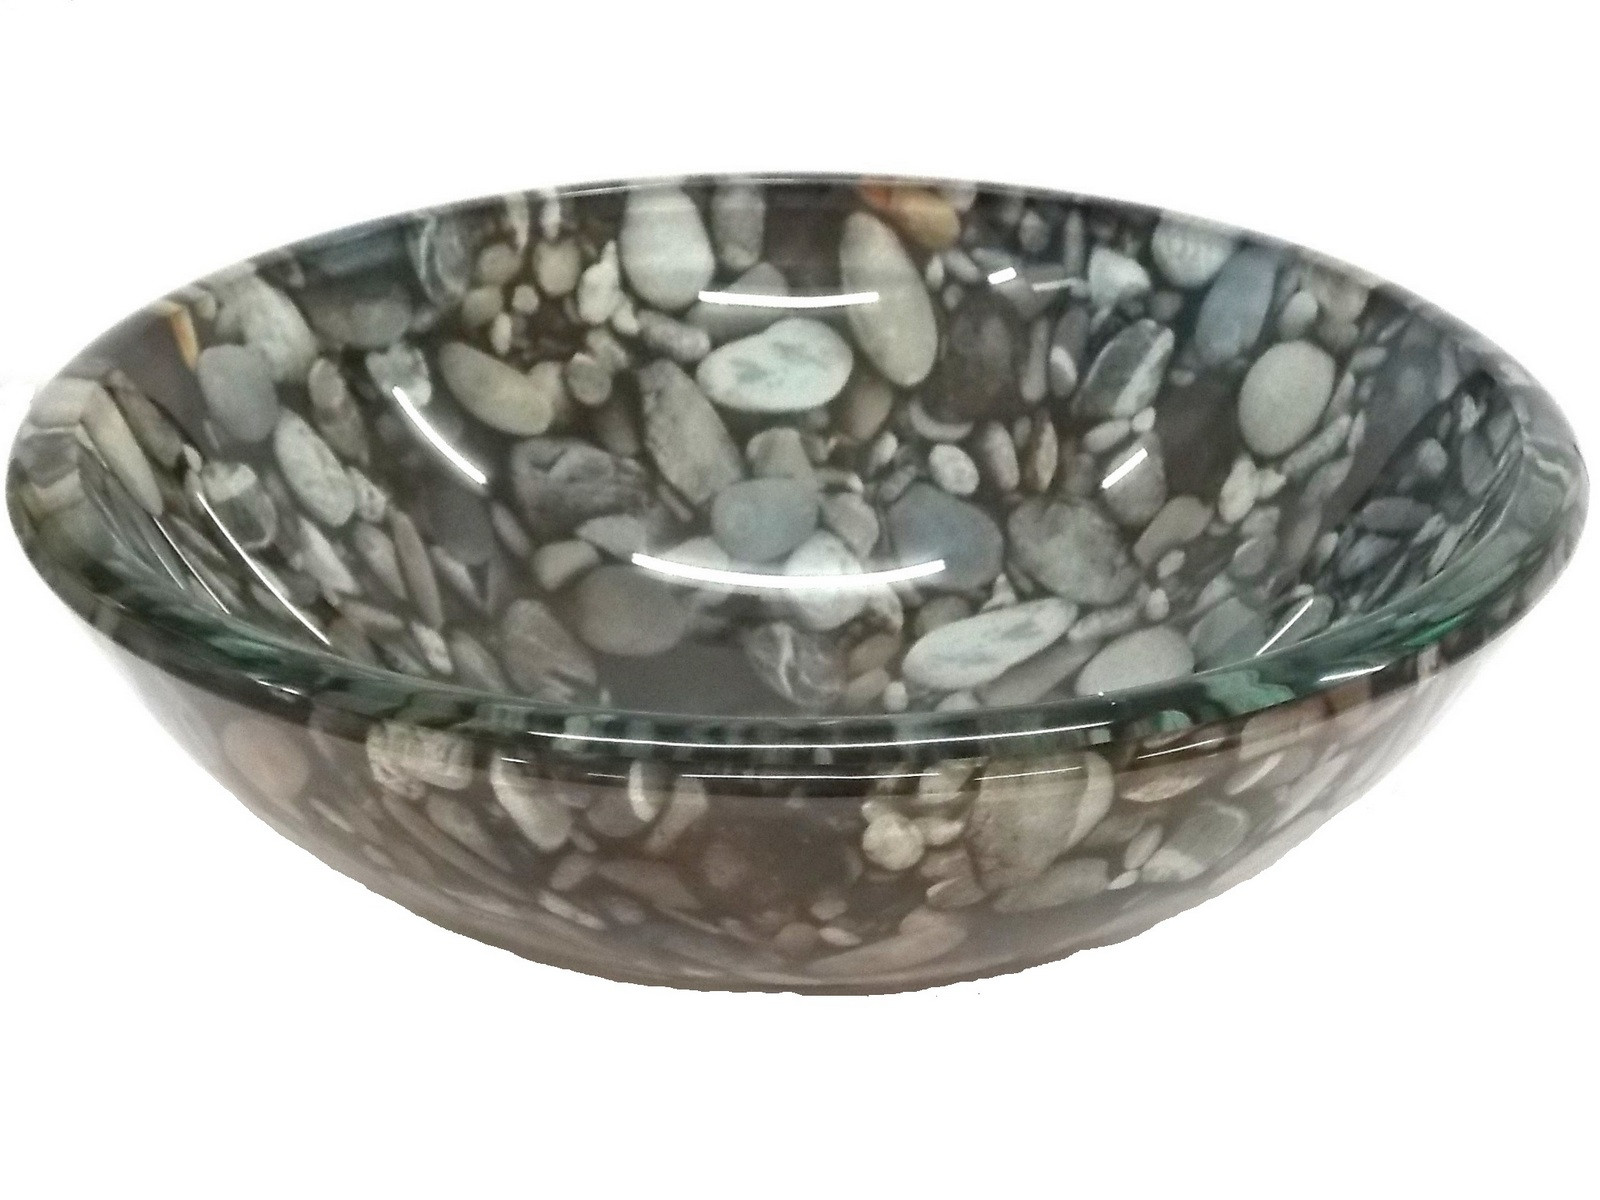 Eden Bath EB_GS39 Single Bowl Natural Pebble Pattern Glass Vessel Sink In Gray